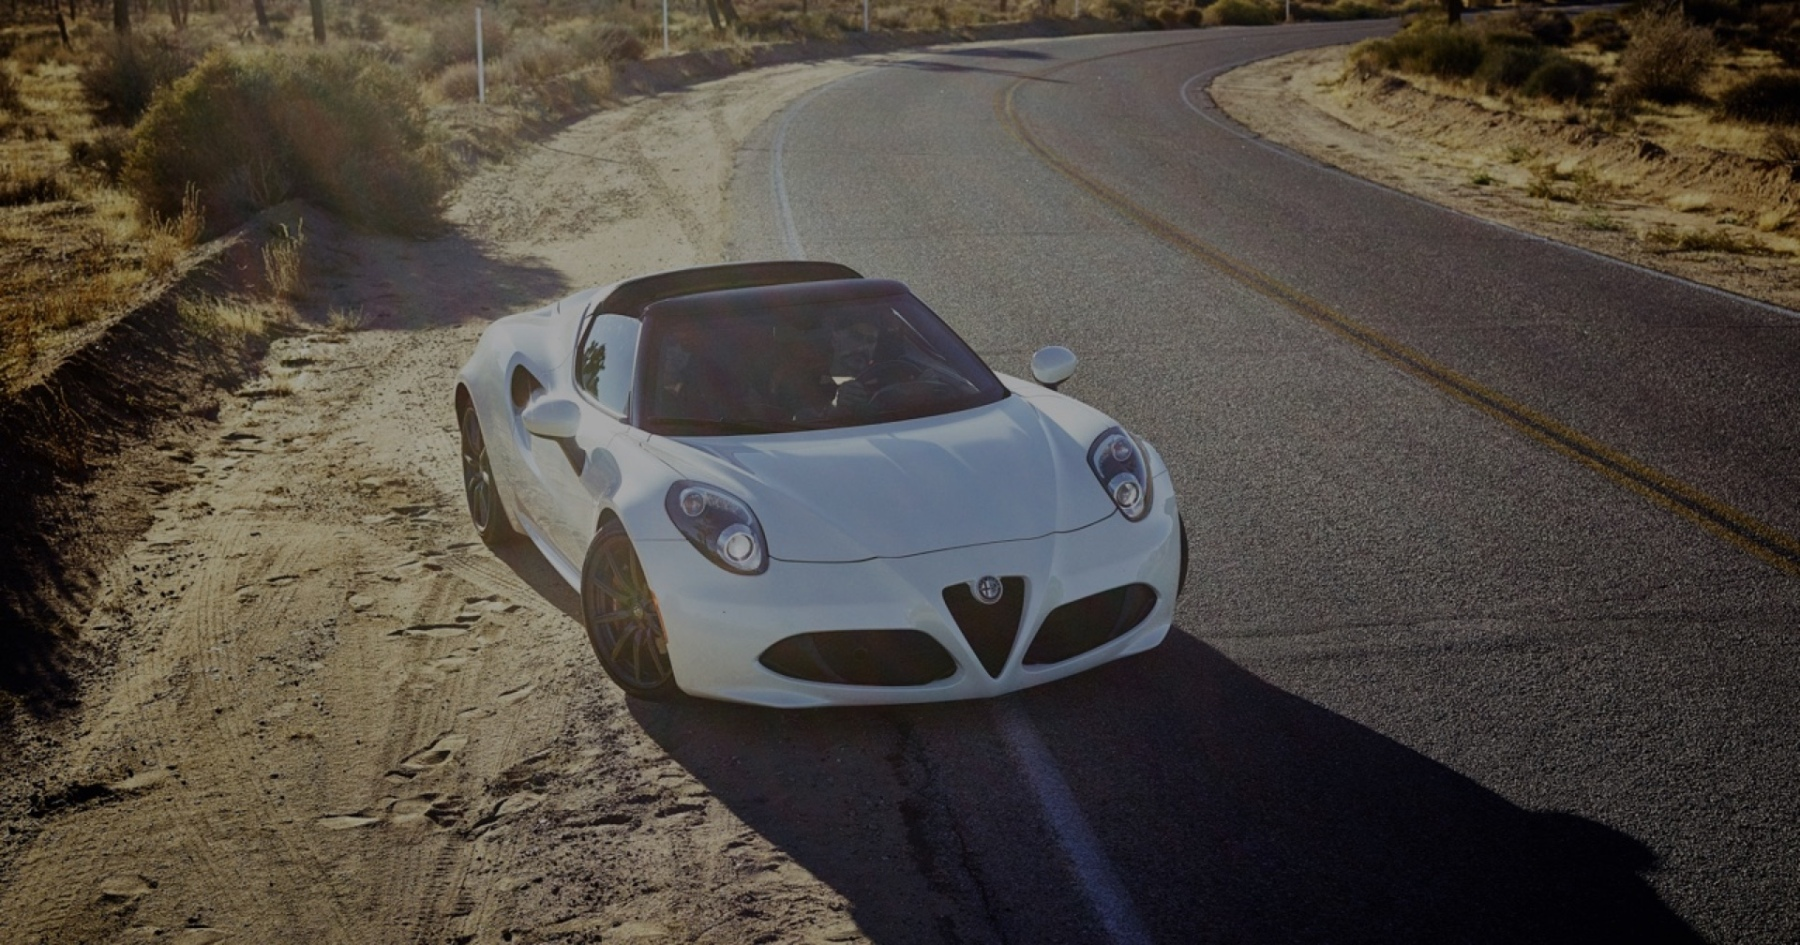 The Winner of This Scavenger Hunt Is Getting an Alfa Romeo